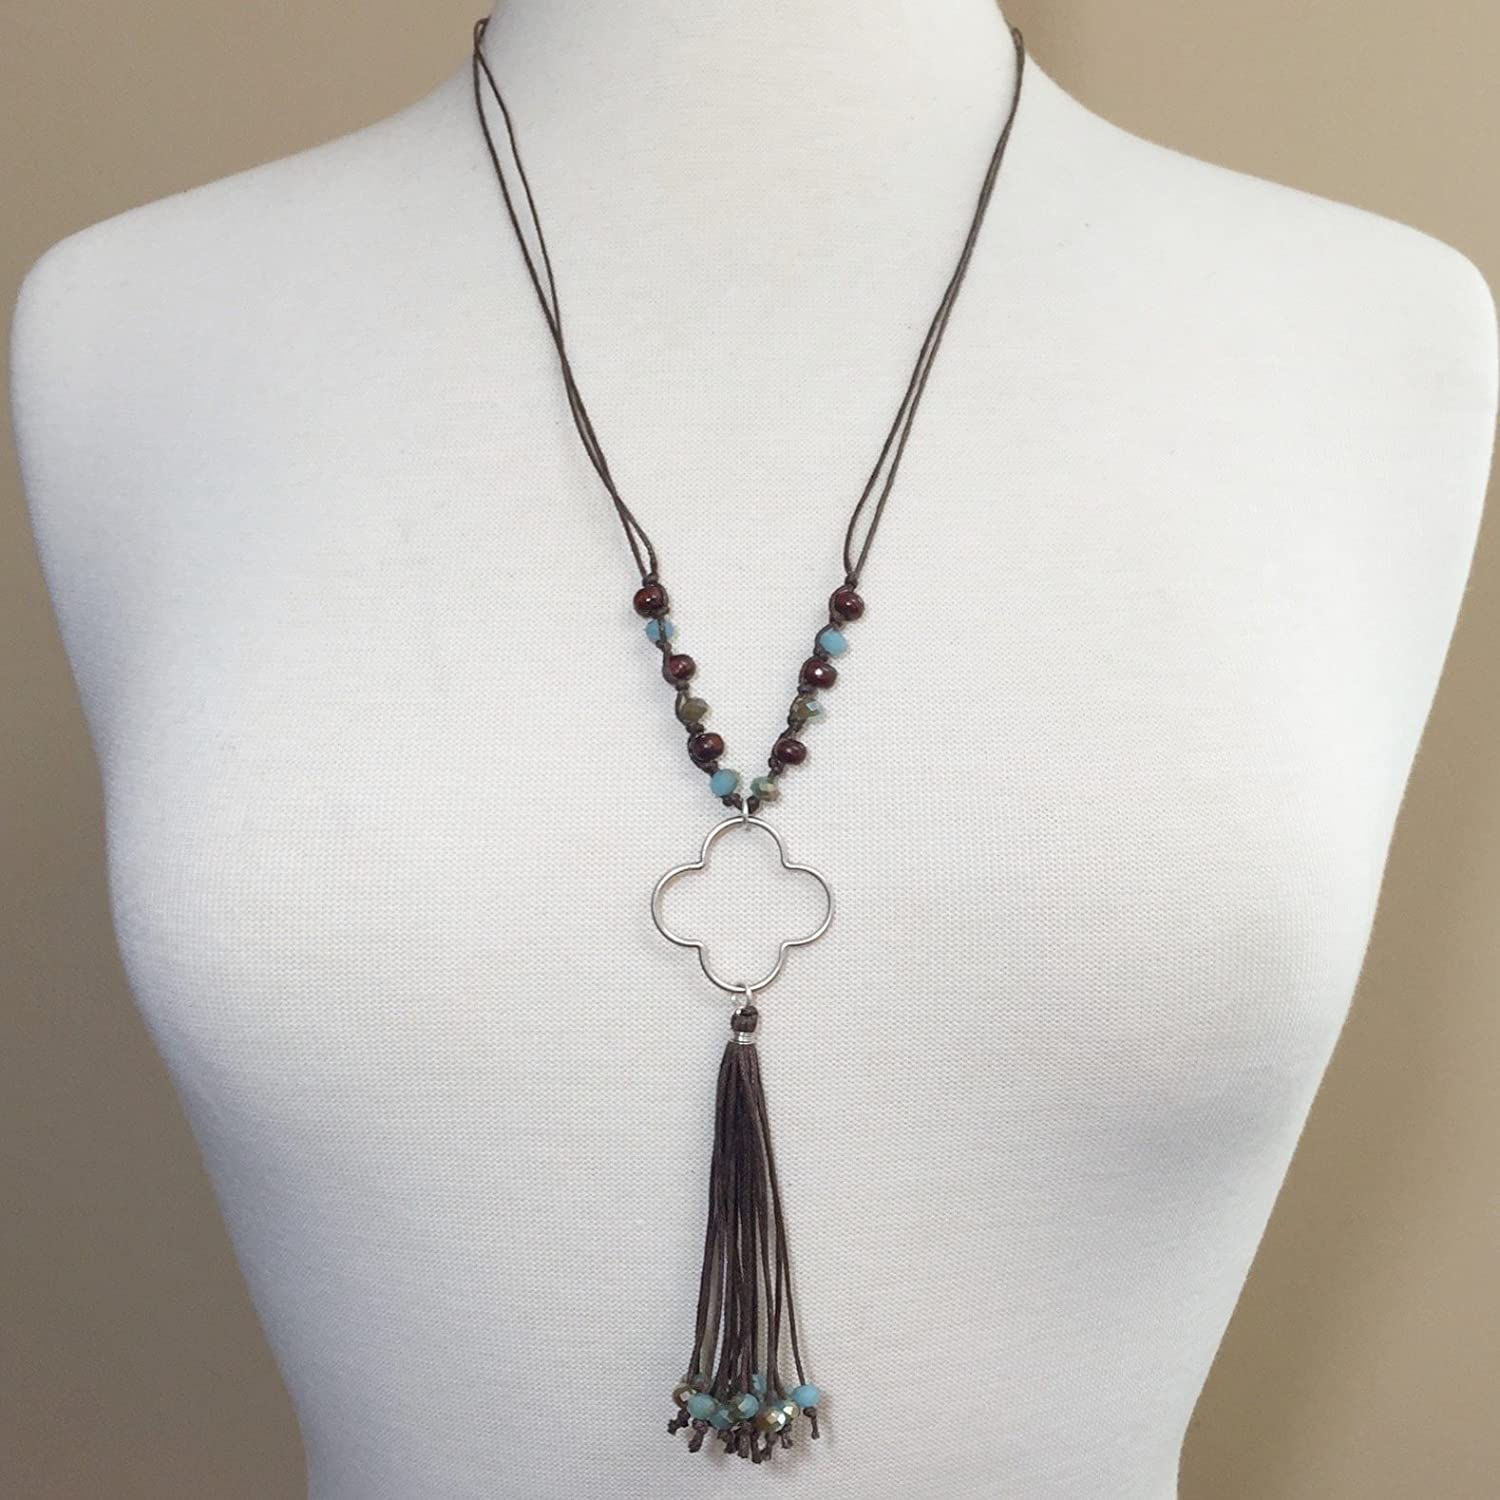 Gold /& Silver-tone Tassel and Clover Tassel necklaces